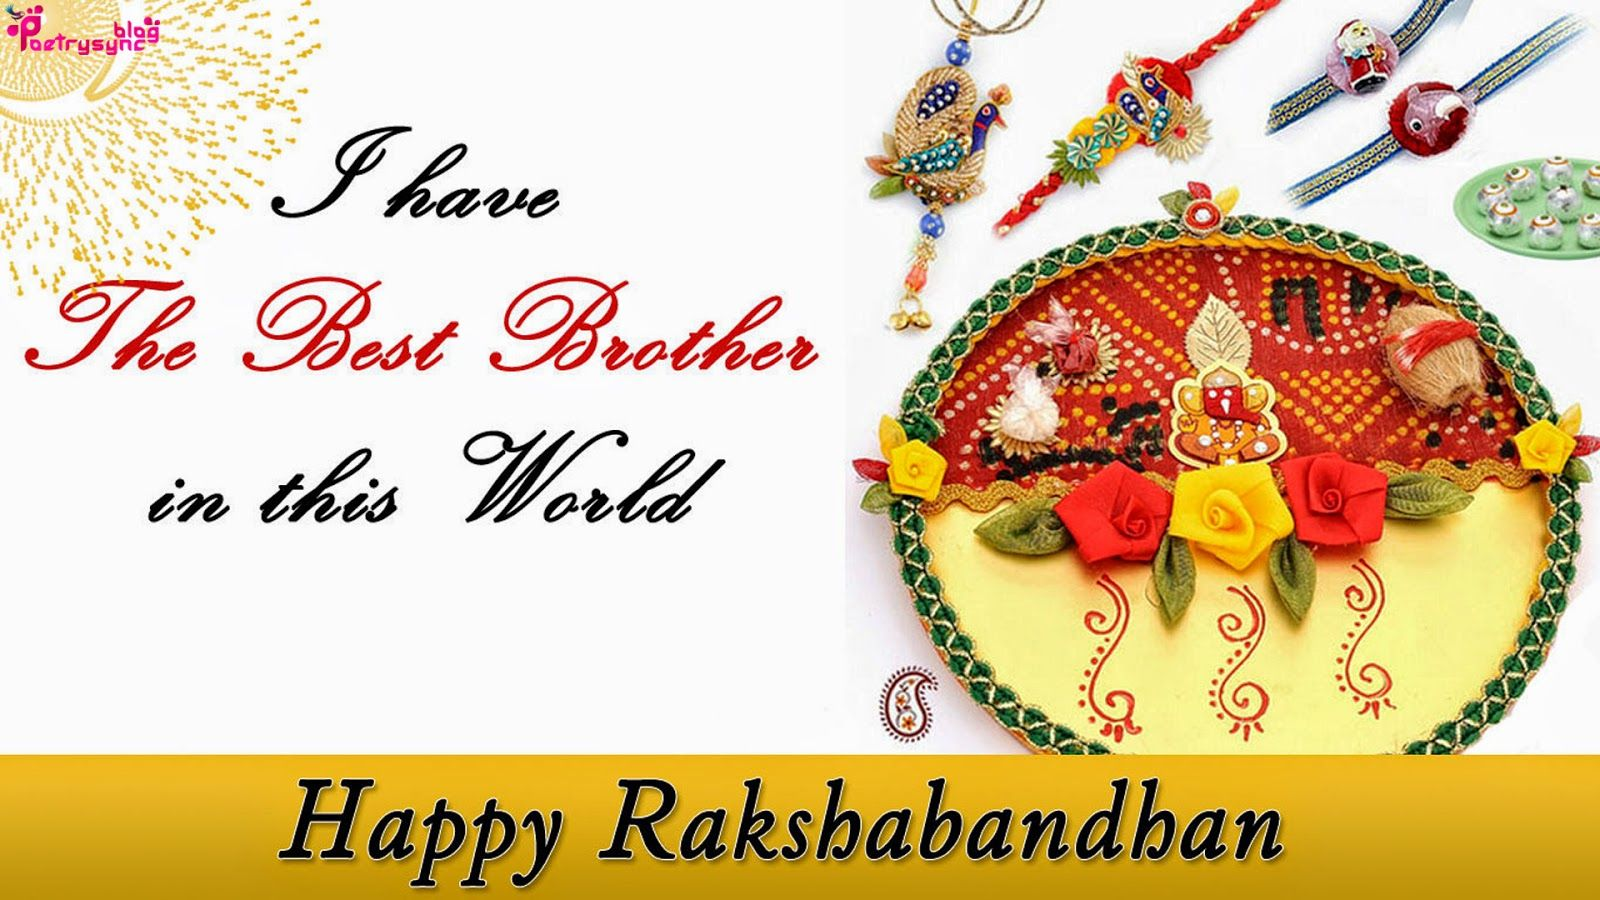 Raksha Bandhan Quotes And Messages Wallpapers Poetry Raksha